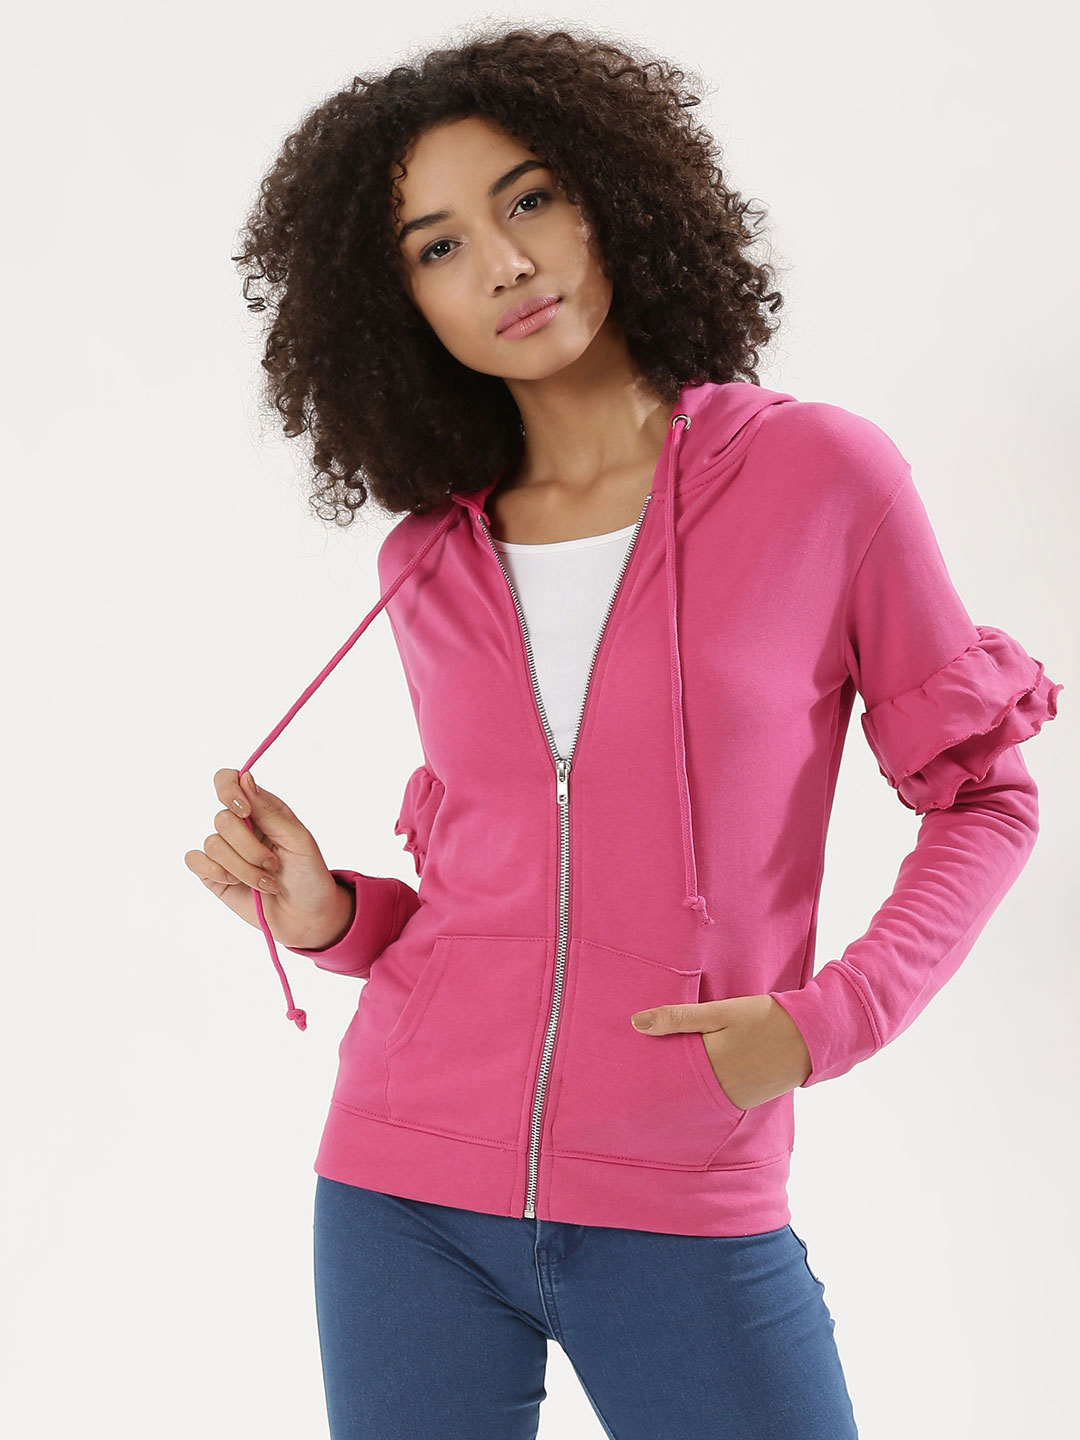 Daisy Street FUSCHIA/RED Hoodie With Ruffle Detail On Sleeve 1